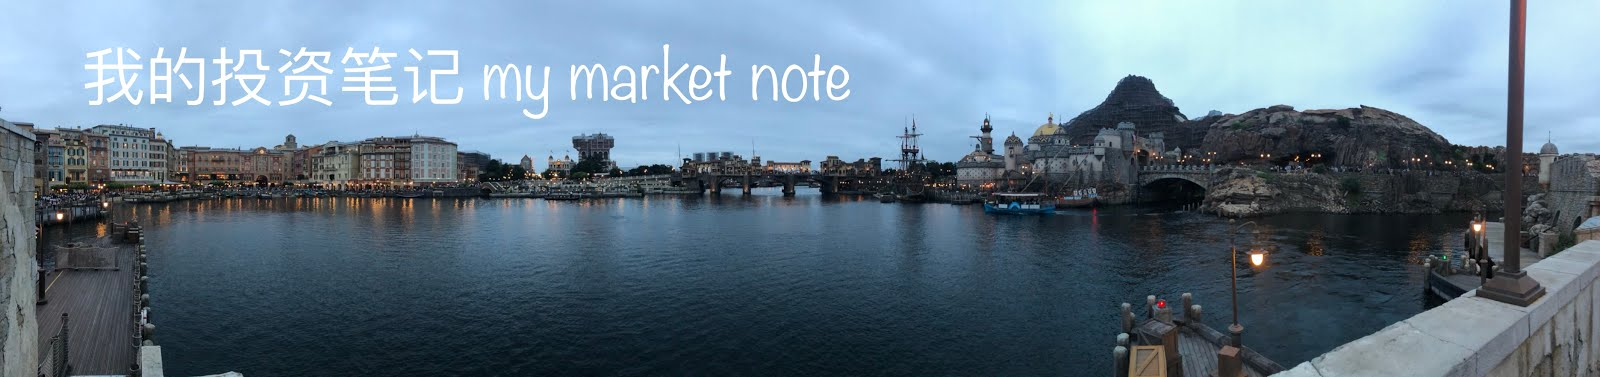 MY Market Note